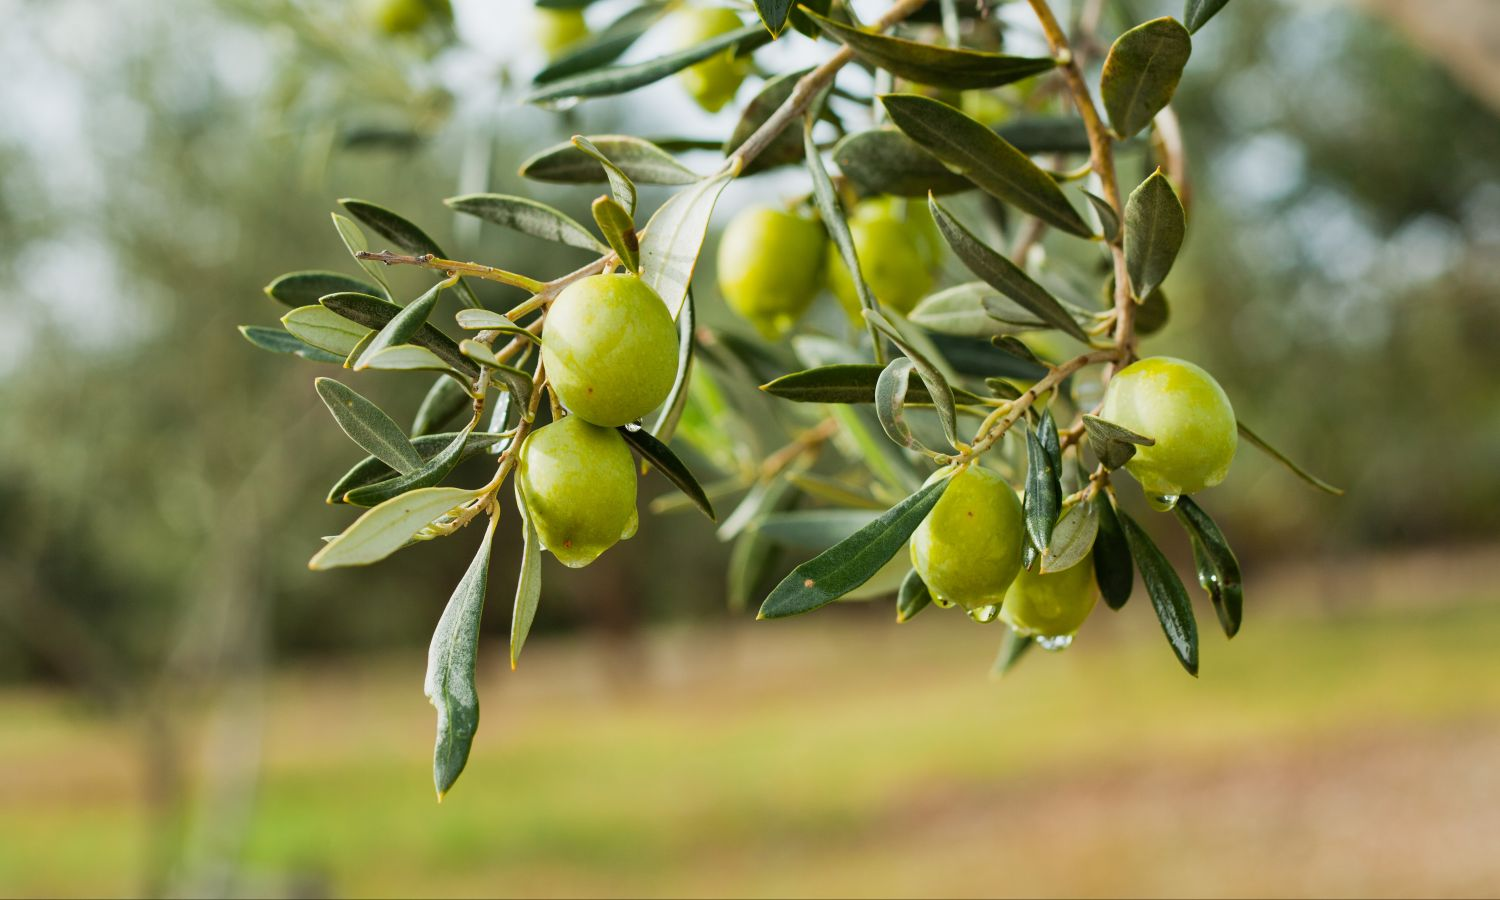 Green fresh olives representing Bertolli quality olive oil